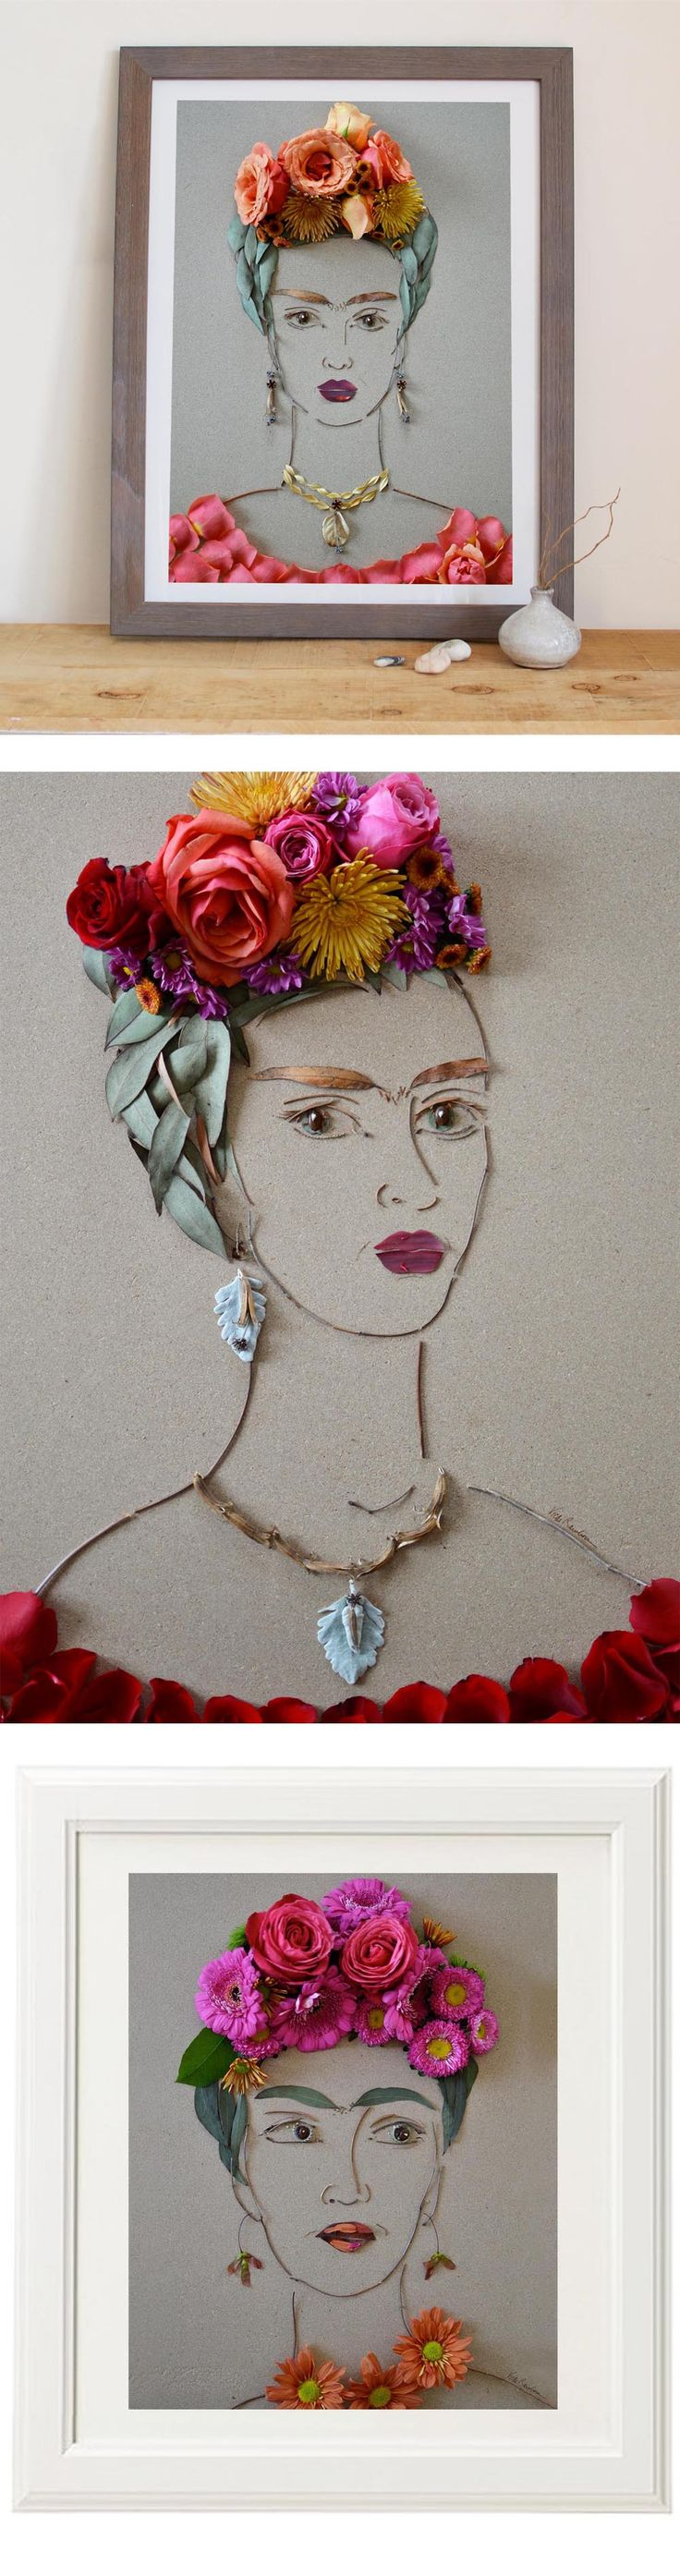 Frida made entirely of flowers and twigs! Totally unique affordable art prints to add to your space or gift to a Frida fan! #FaceTheFoliage by Vicki Rawlins